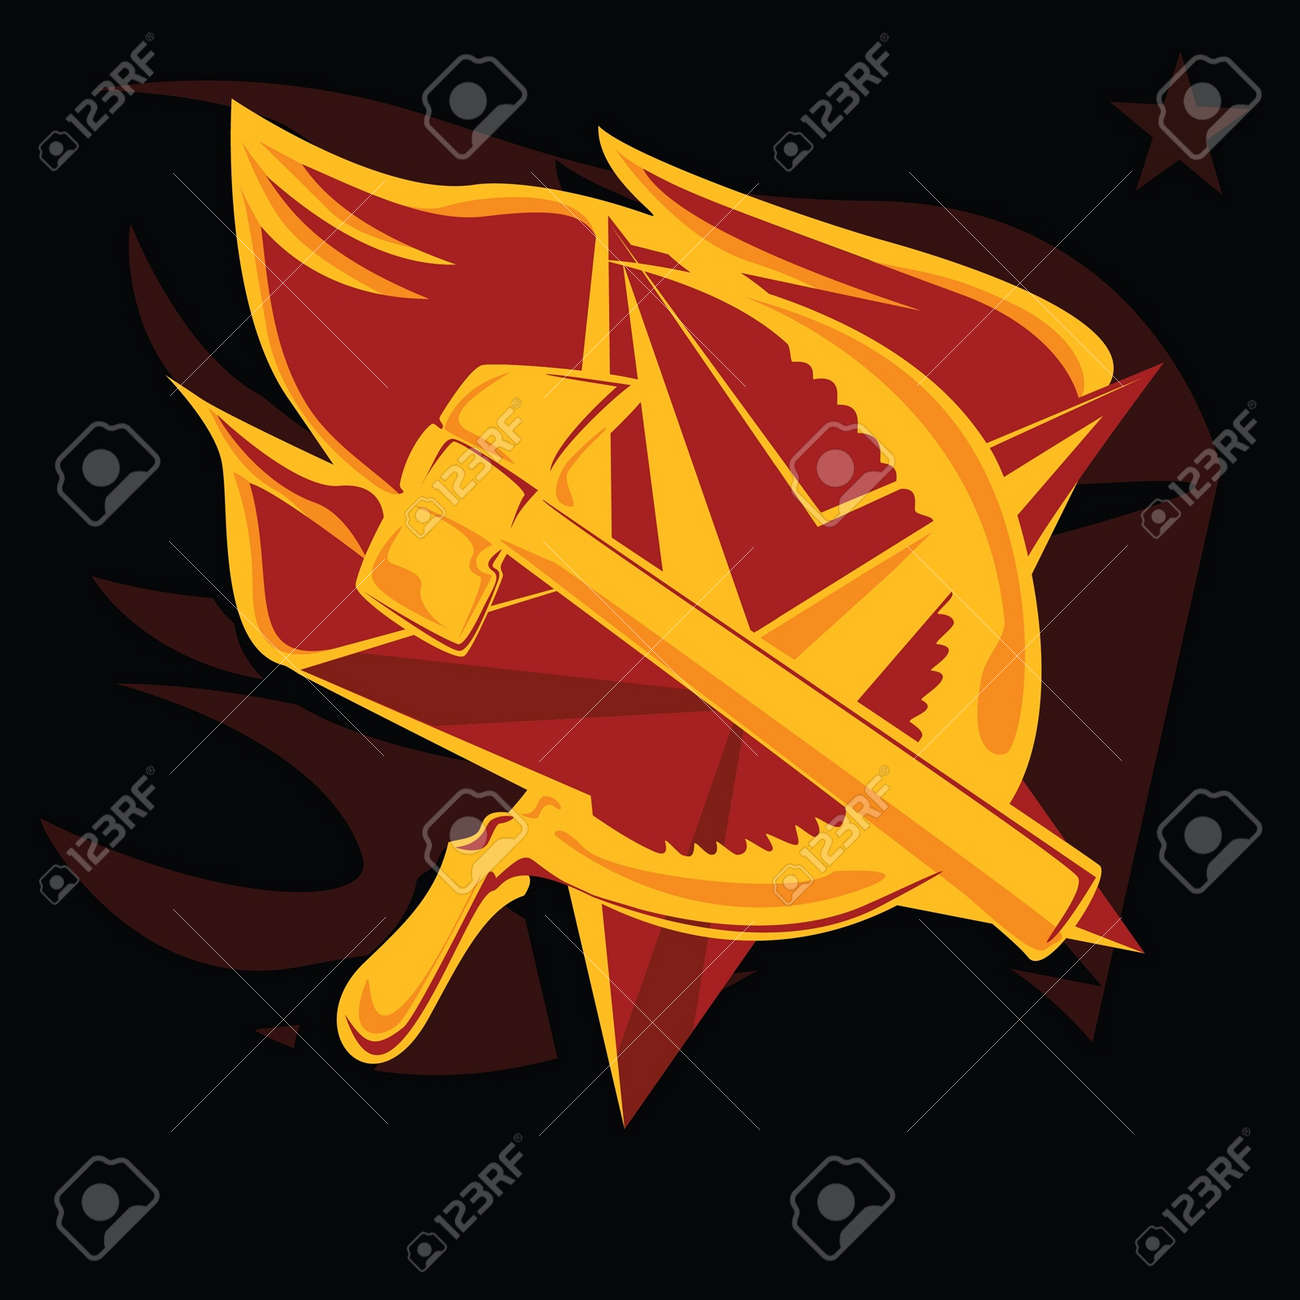 Hammer and sickle on the flame star communism symbol royalty free hammer and sickle on the flame star communism symbol stock vector 11132633 biocorpaavc